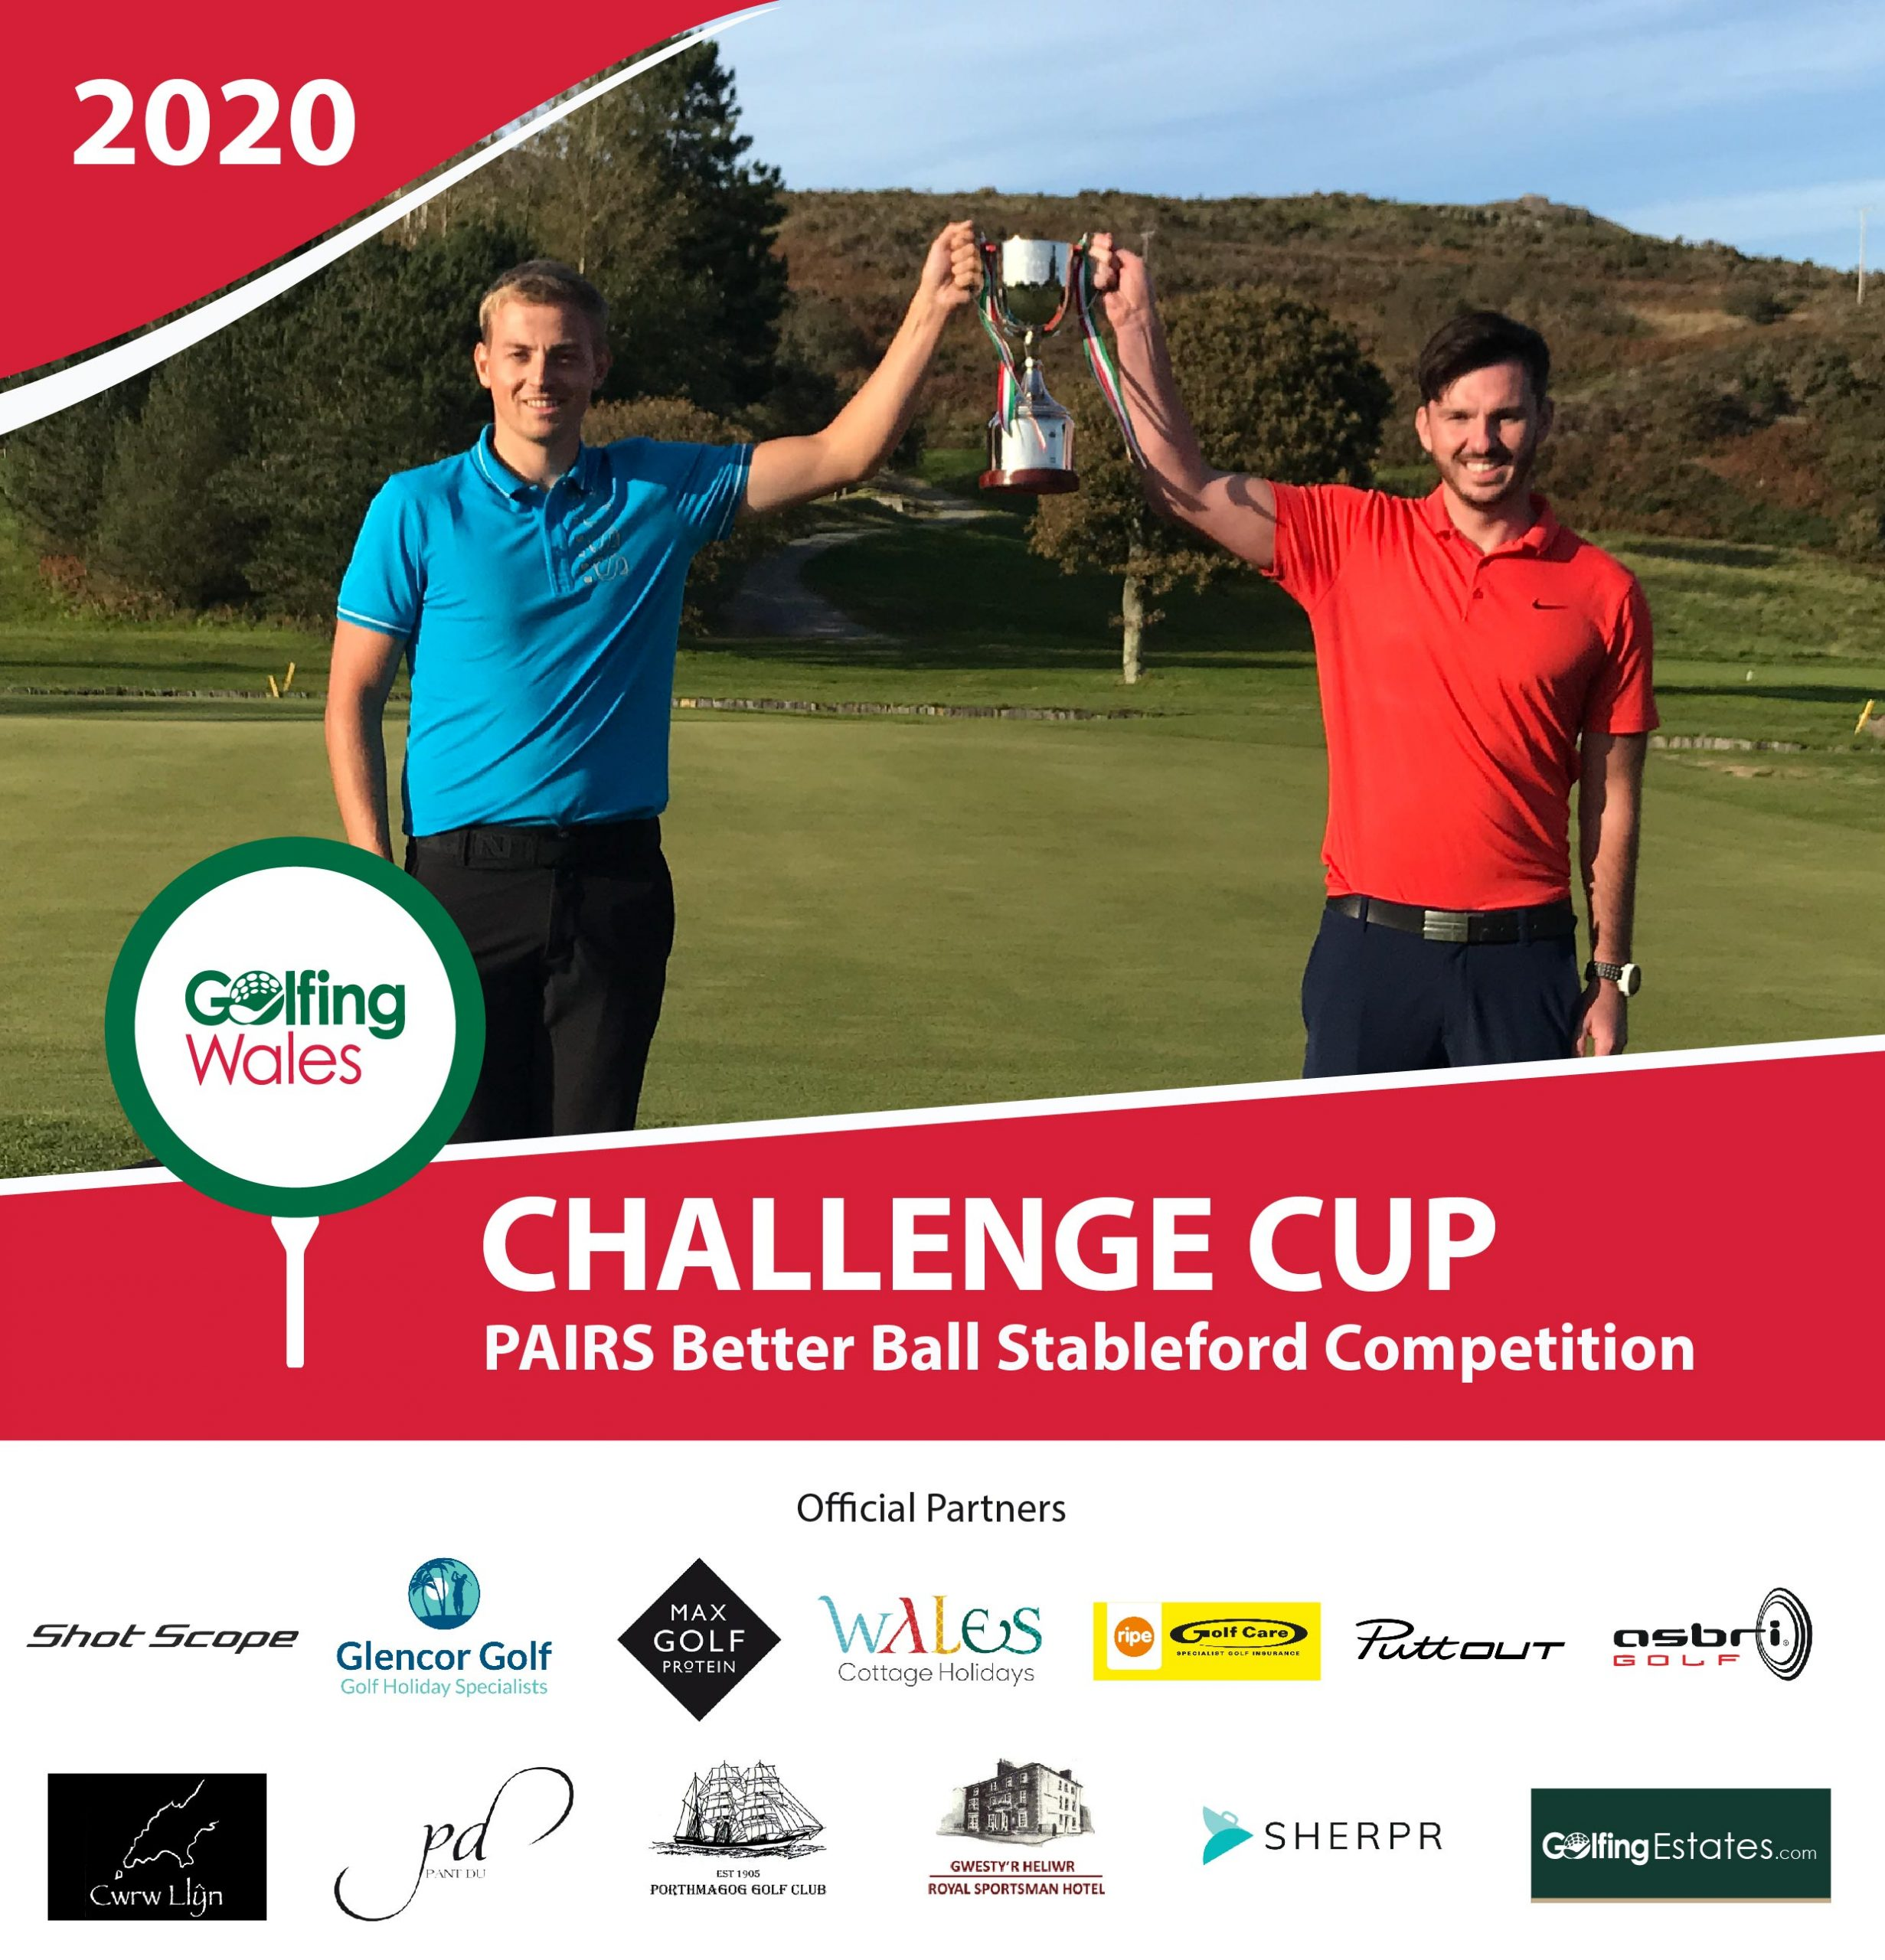 Meilir Huws & Sion Caelloi Jones win the 2020 Golfing Wales Challenge Cup